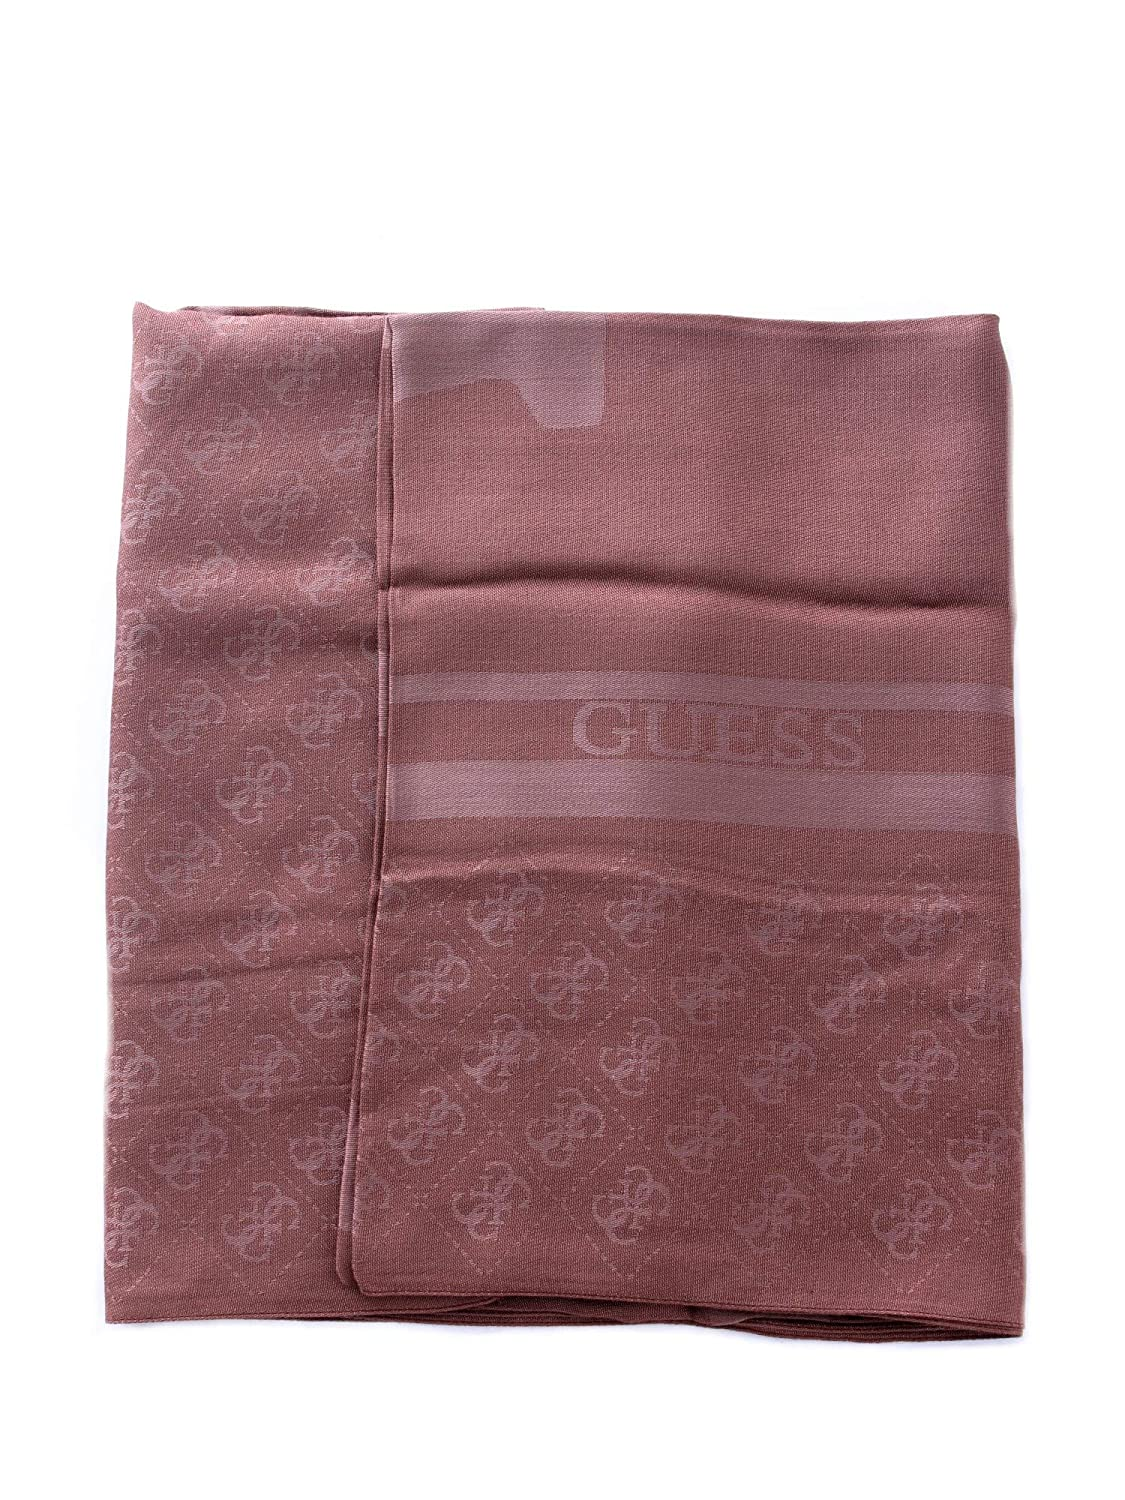 Guess AW8172MOD03 SCIARPA Donna